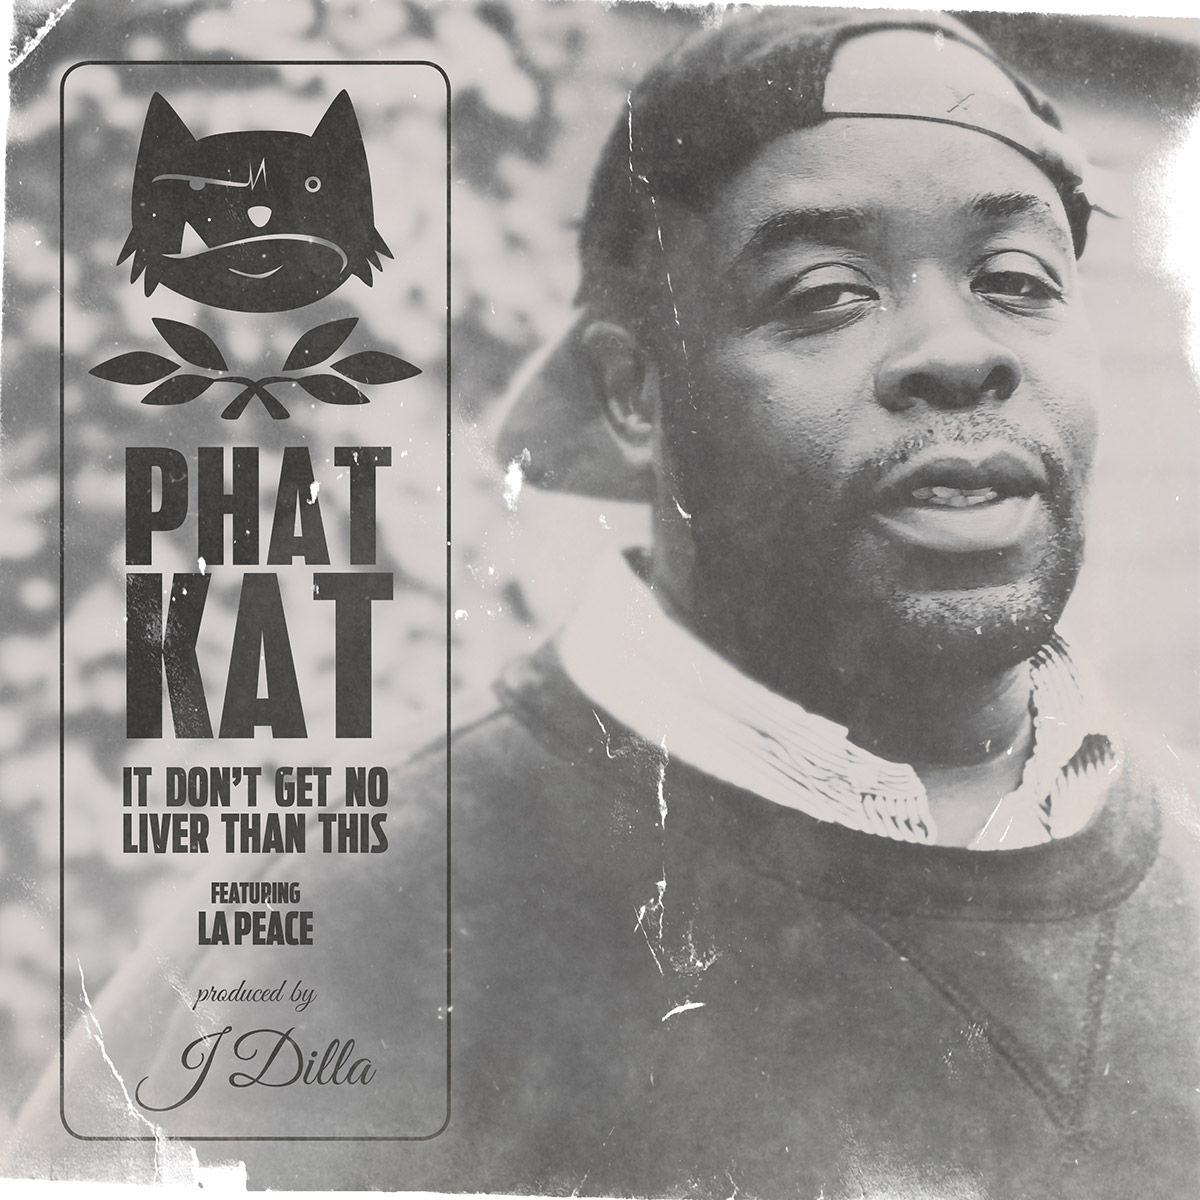 Phat Kat - It Don't Get No Liver Than This